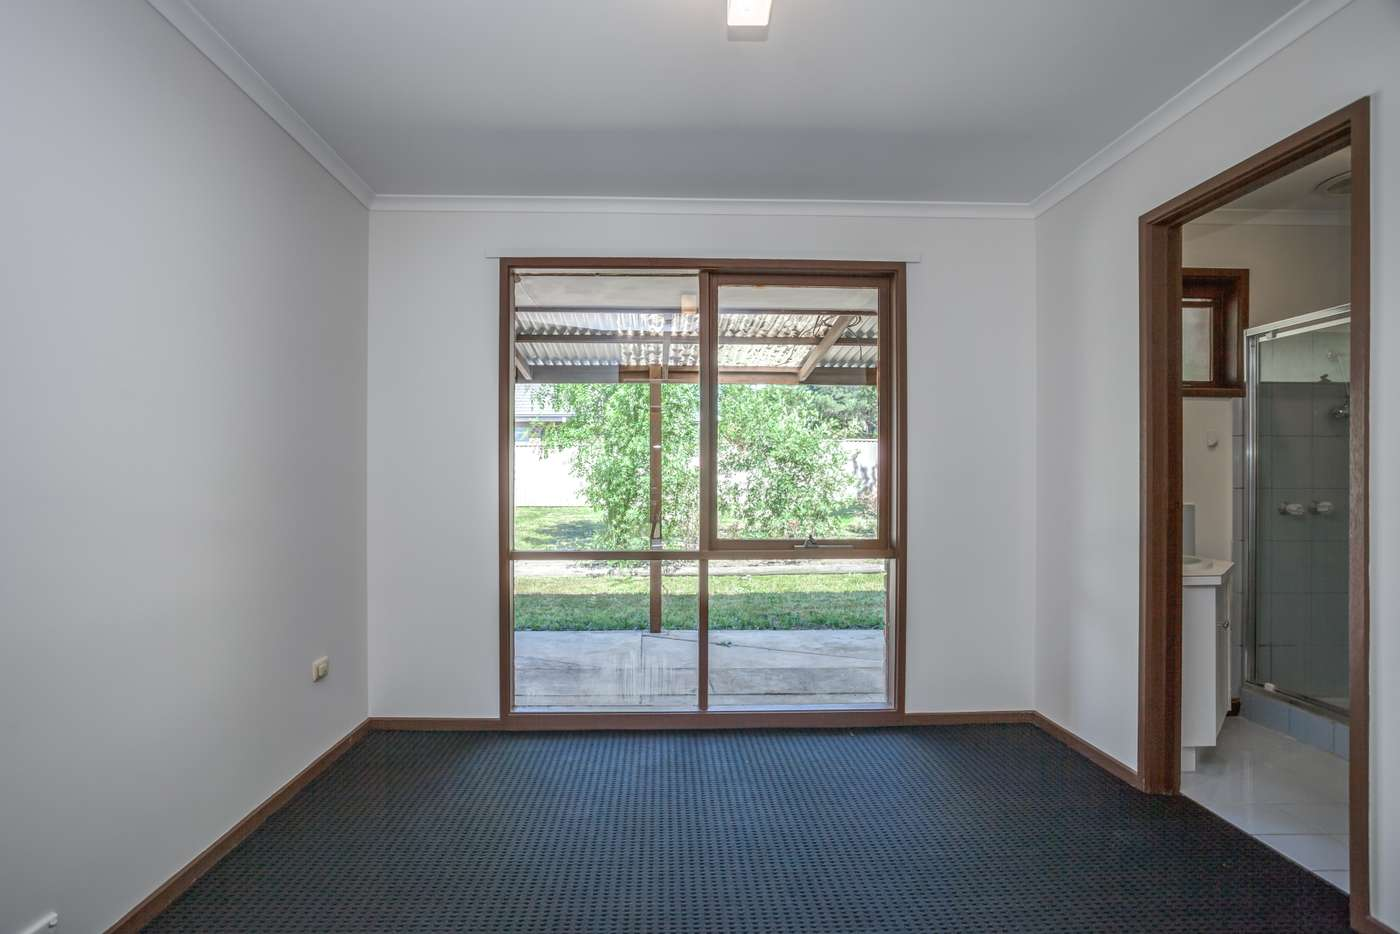 Fifth view of Homely house listing, 34 Metcalfe Drive, Romsey VIC 3434